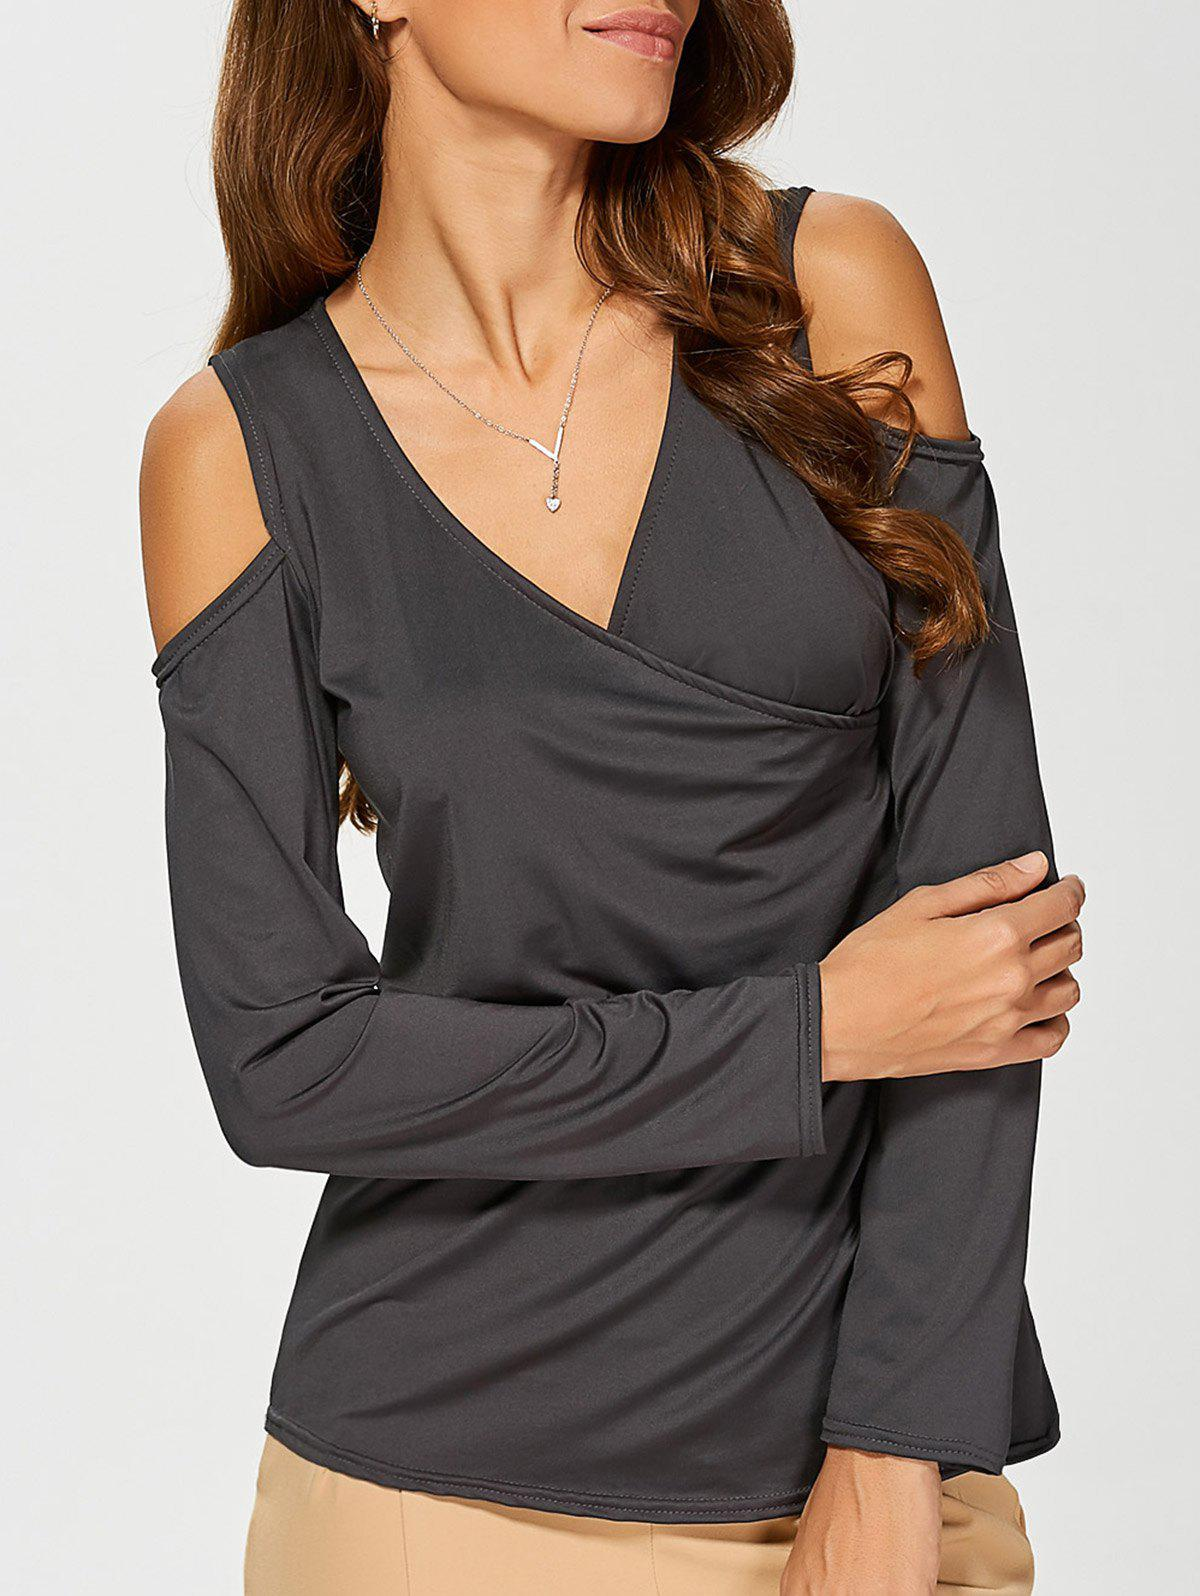 Cold Shoulder Slimming T-Shirt - DEEP GRAY S